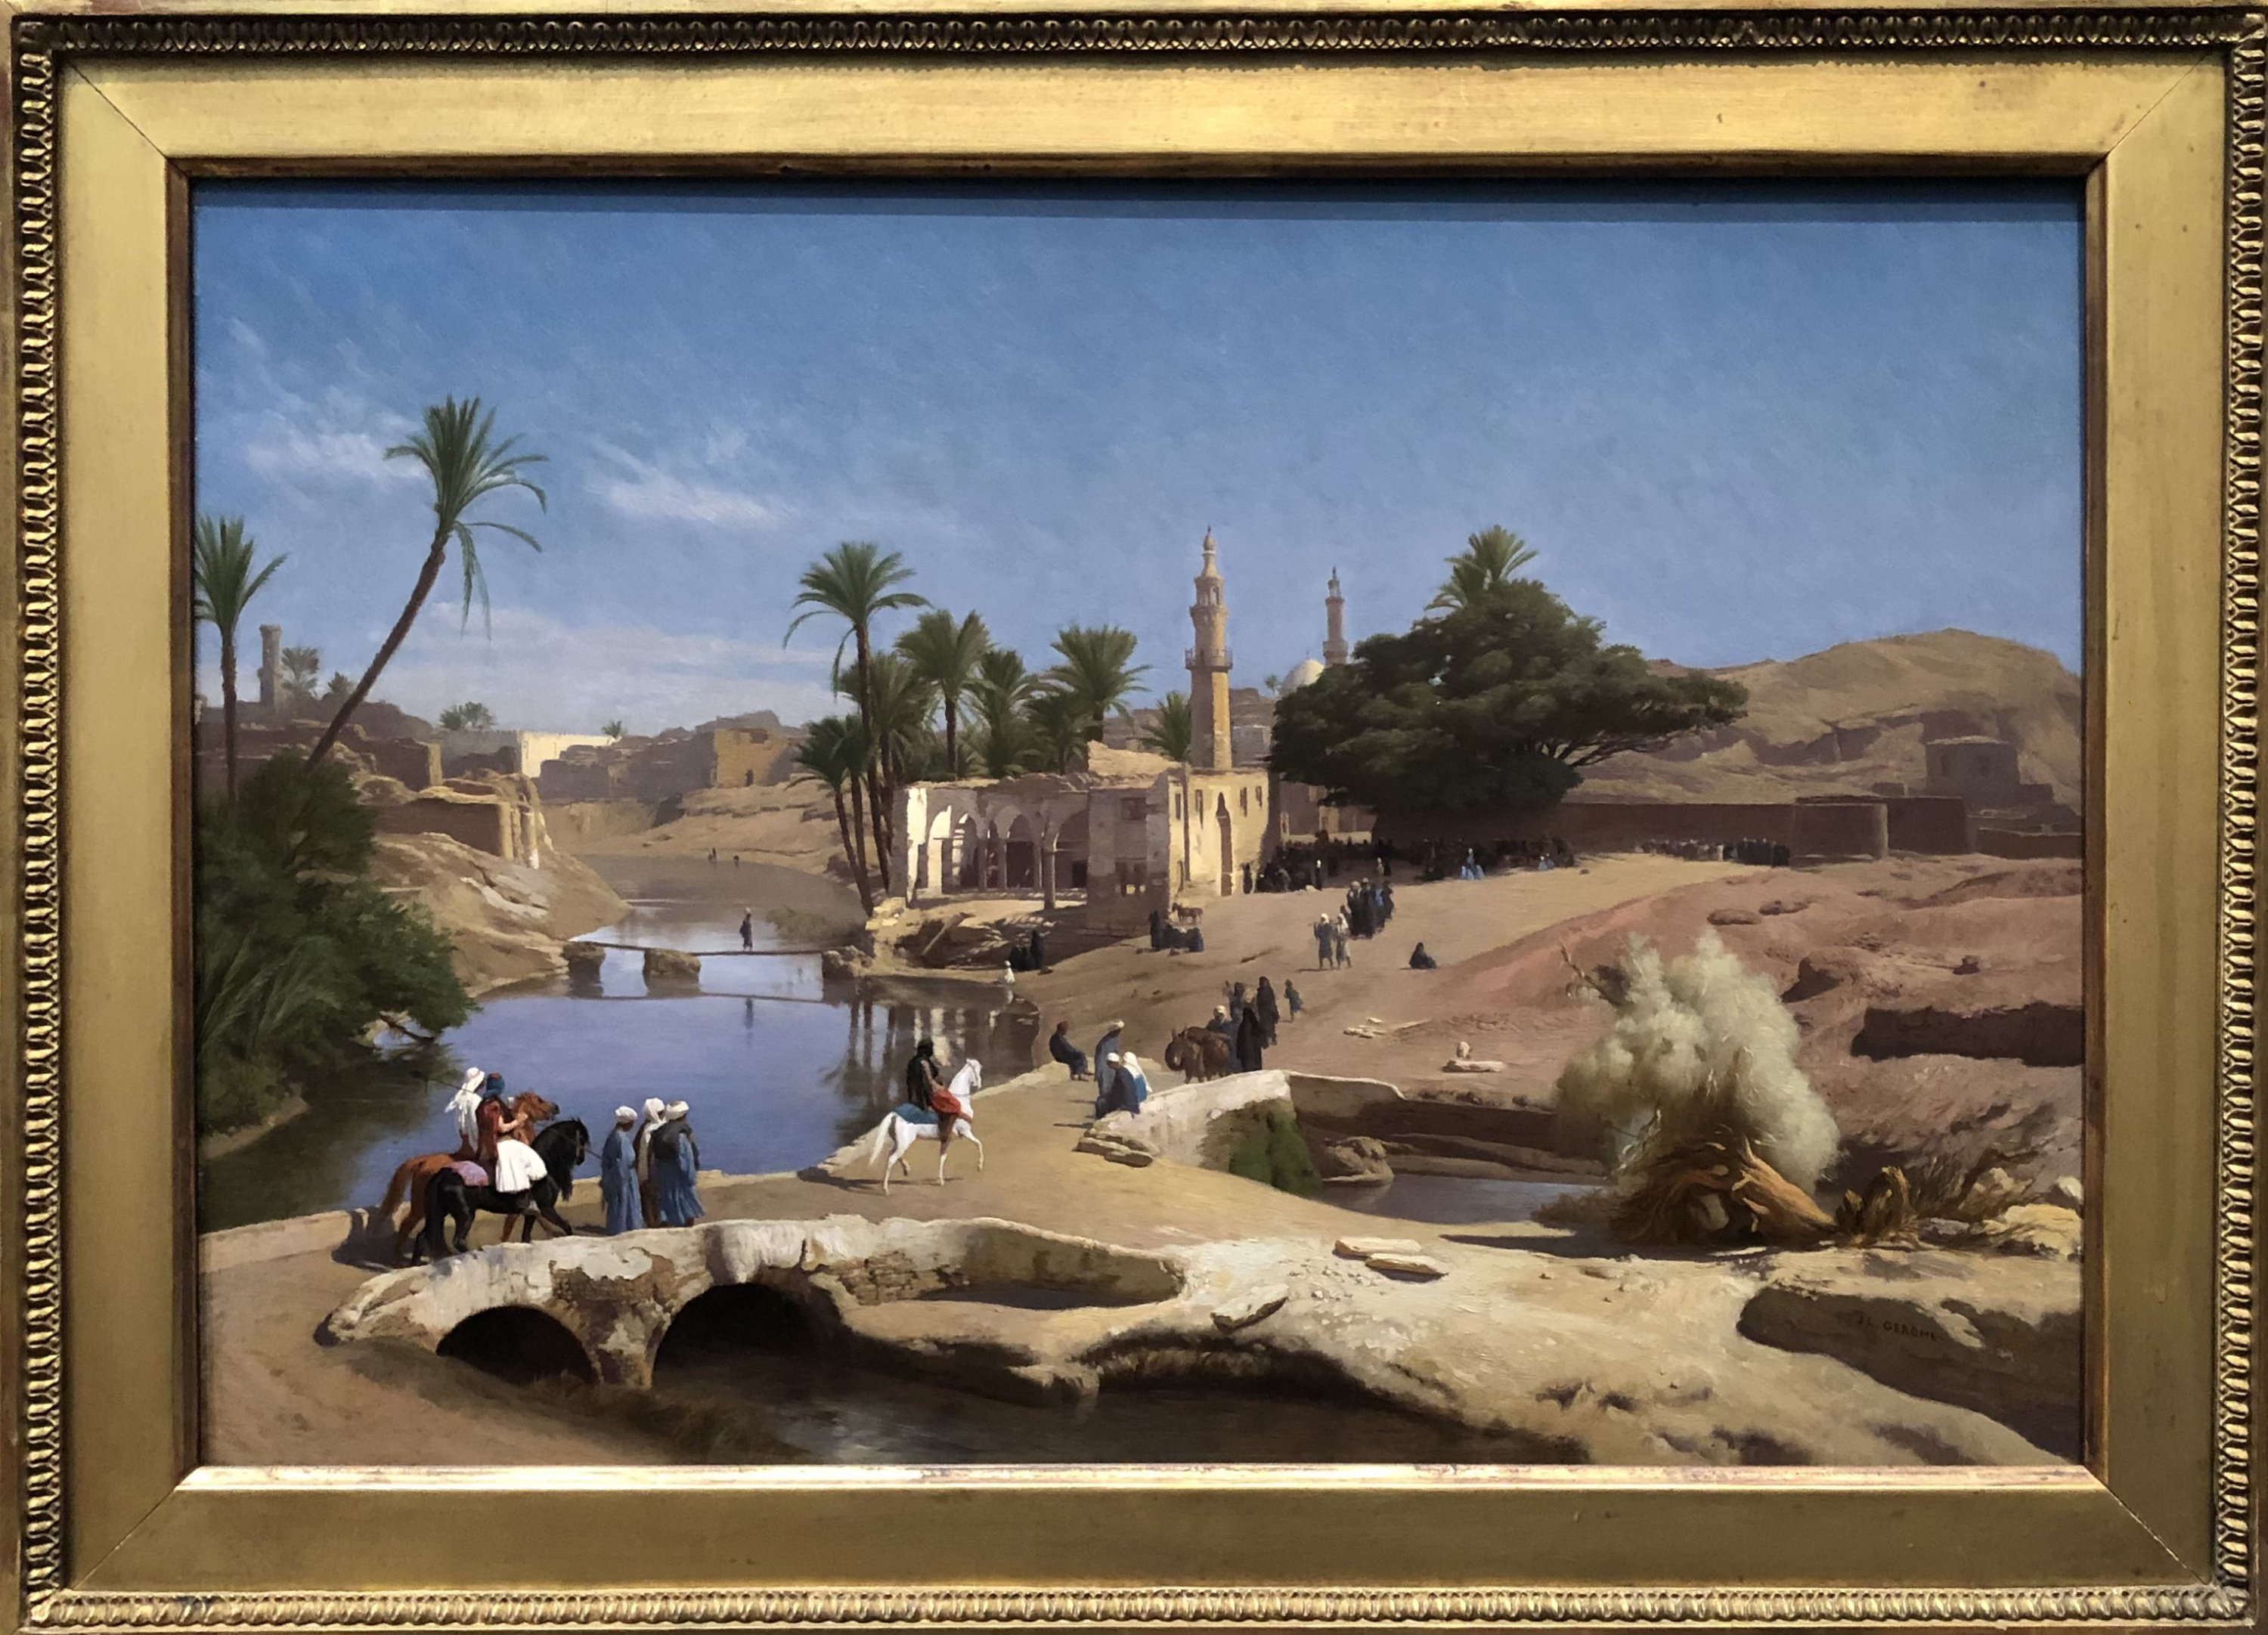 Jean-Leon Gerome's 'View of Medinet El-Fayoum,' 1868-1870, oil on canvas at the National Gallery of Art in Washington, D.C., U.S., June 12, 2021. (Photo by Matt Hanson)